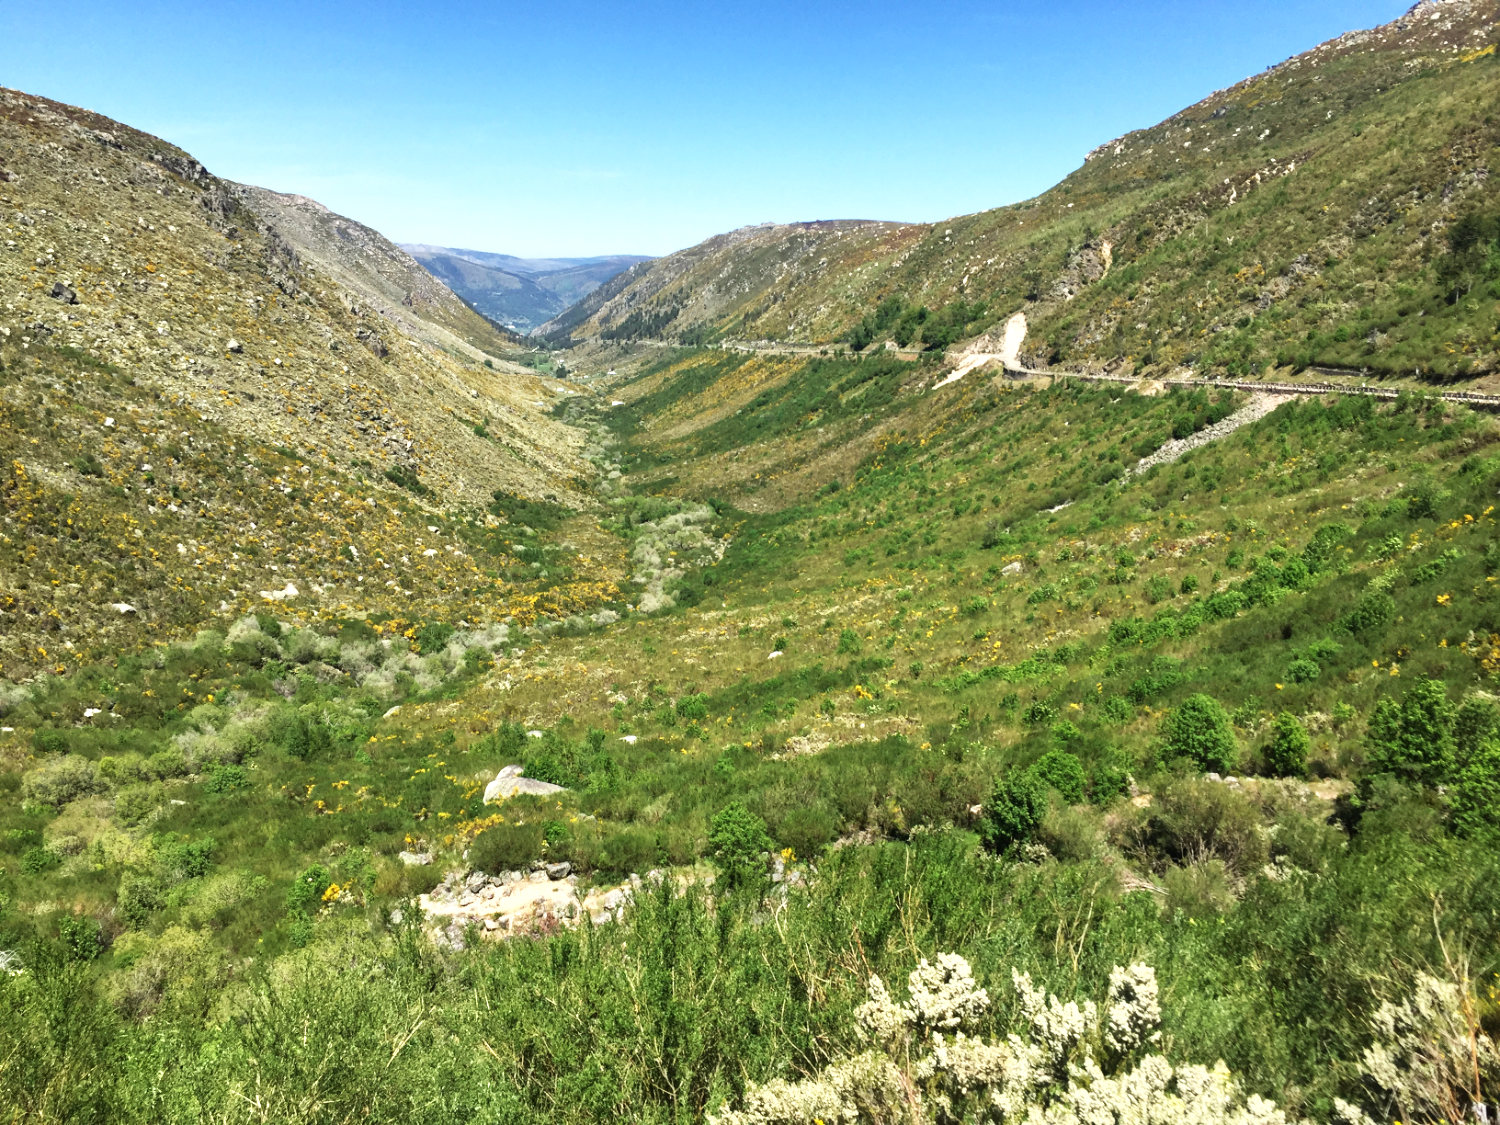 U-shaped glacial valley of the Rive Zêzere